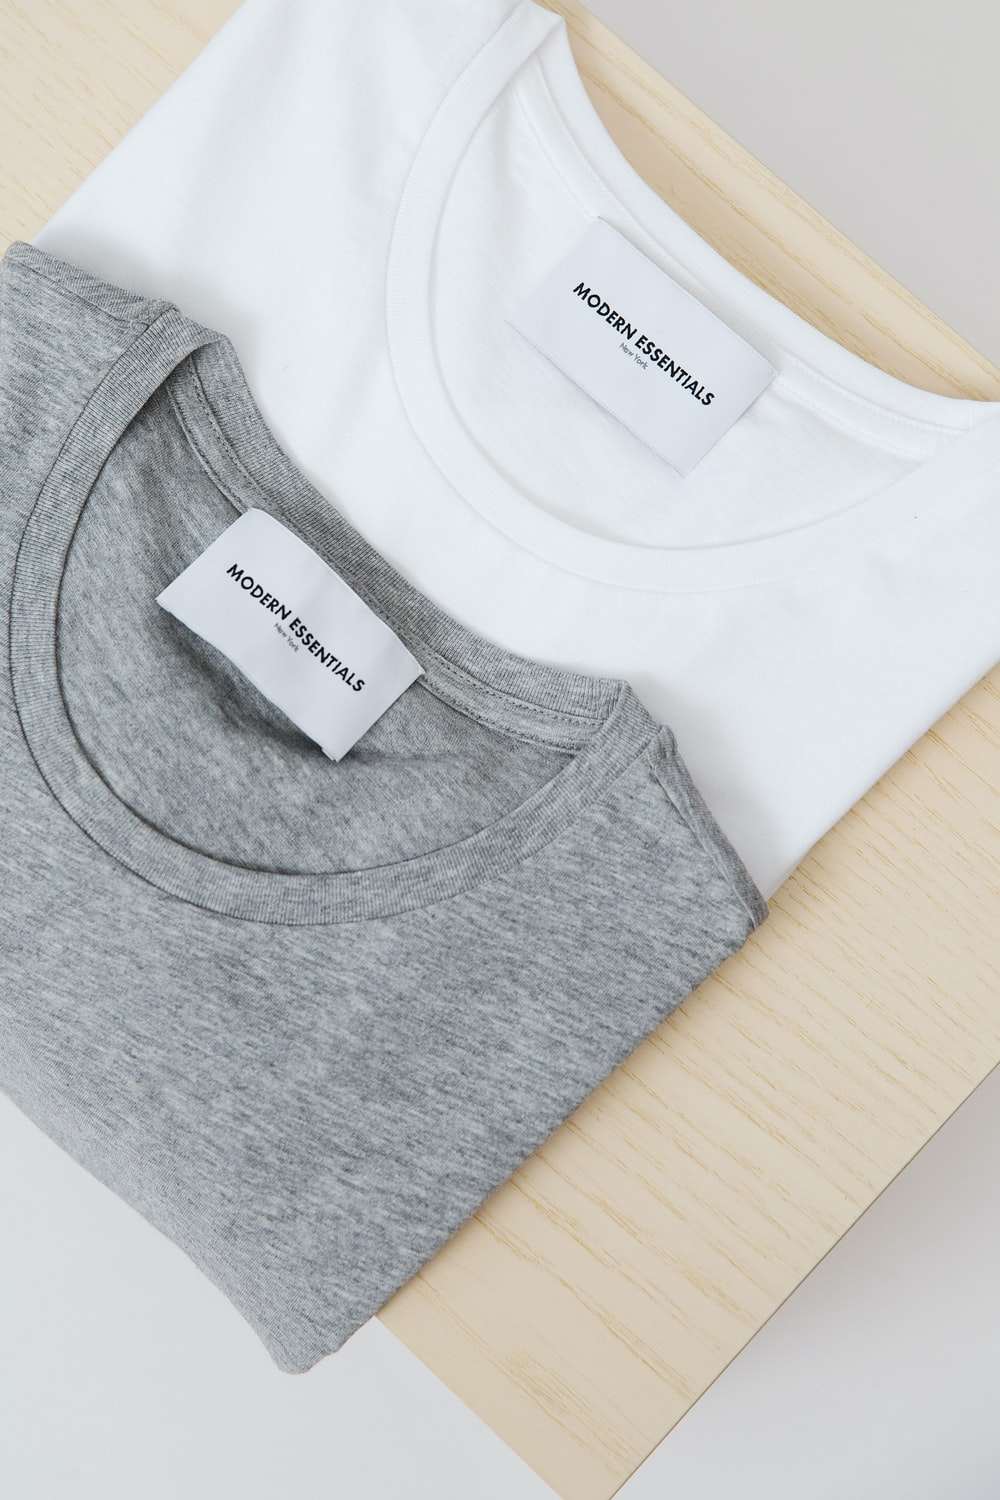 Shirt Pictures Download Free Images On Unsplash